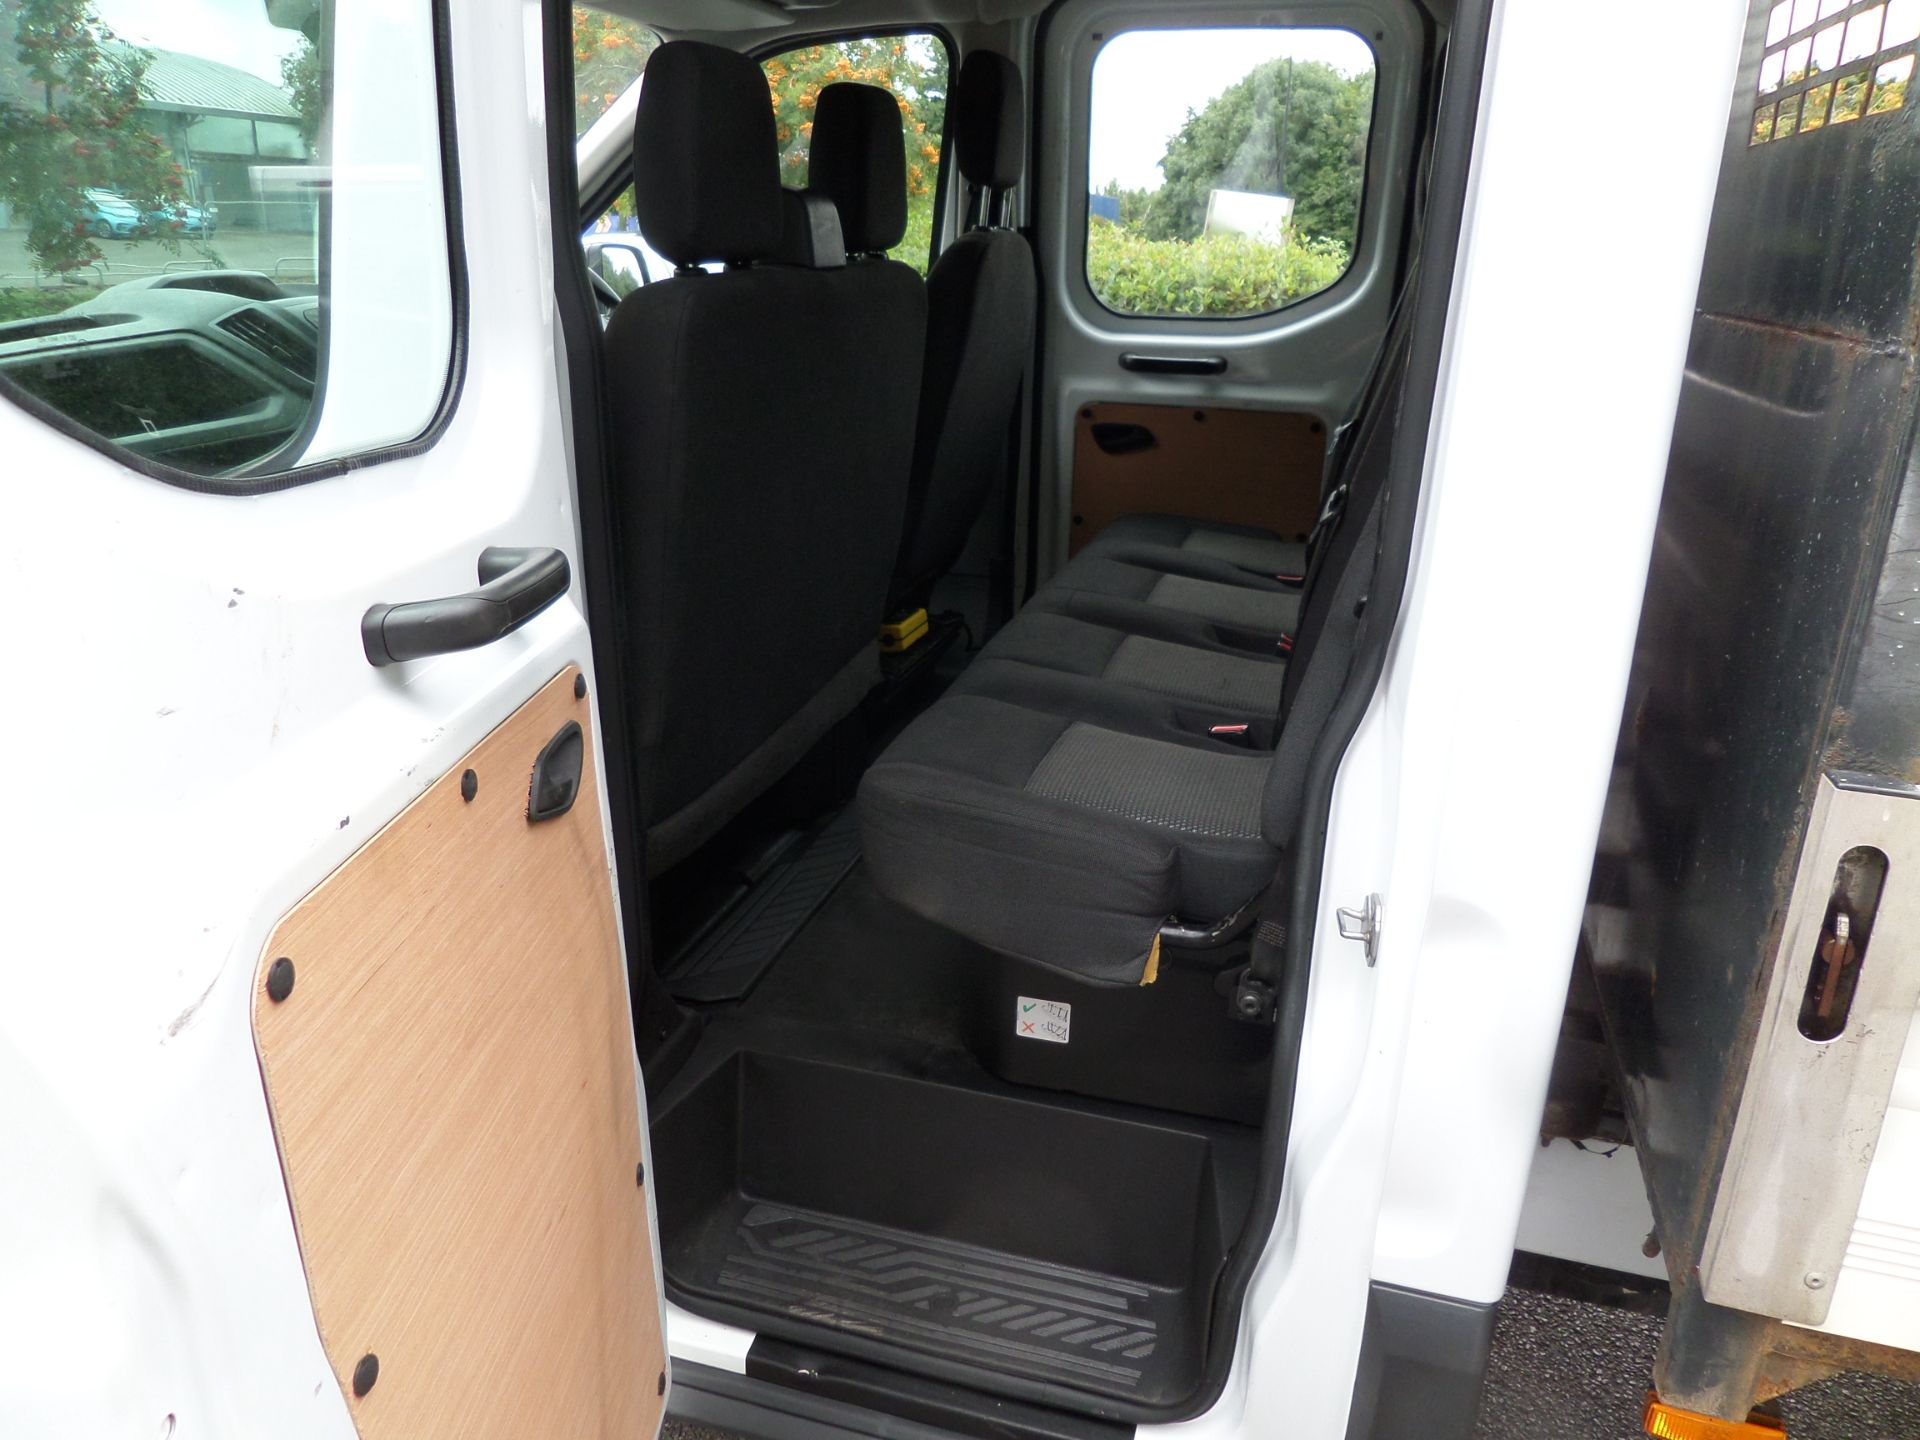 2018 Ford Transit 2.0 Tdci 130Ps Double Cab Tipper Euro 6 (FP67FCU) Image 8